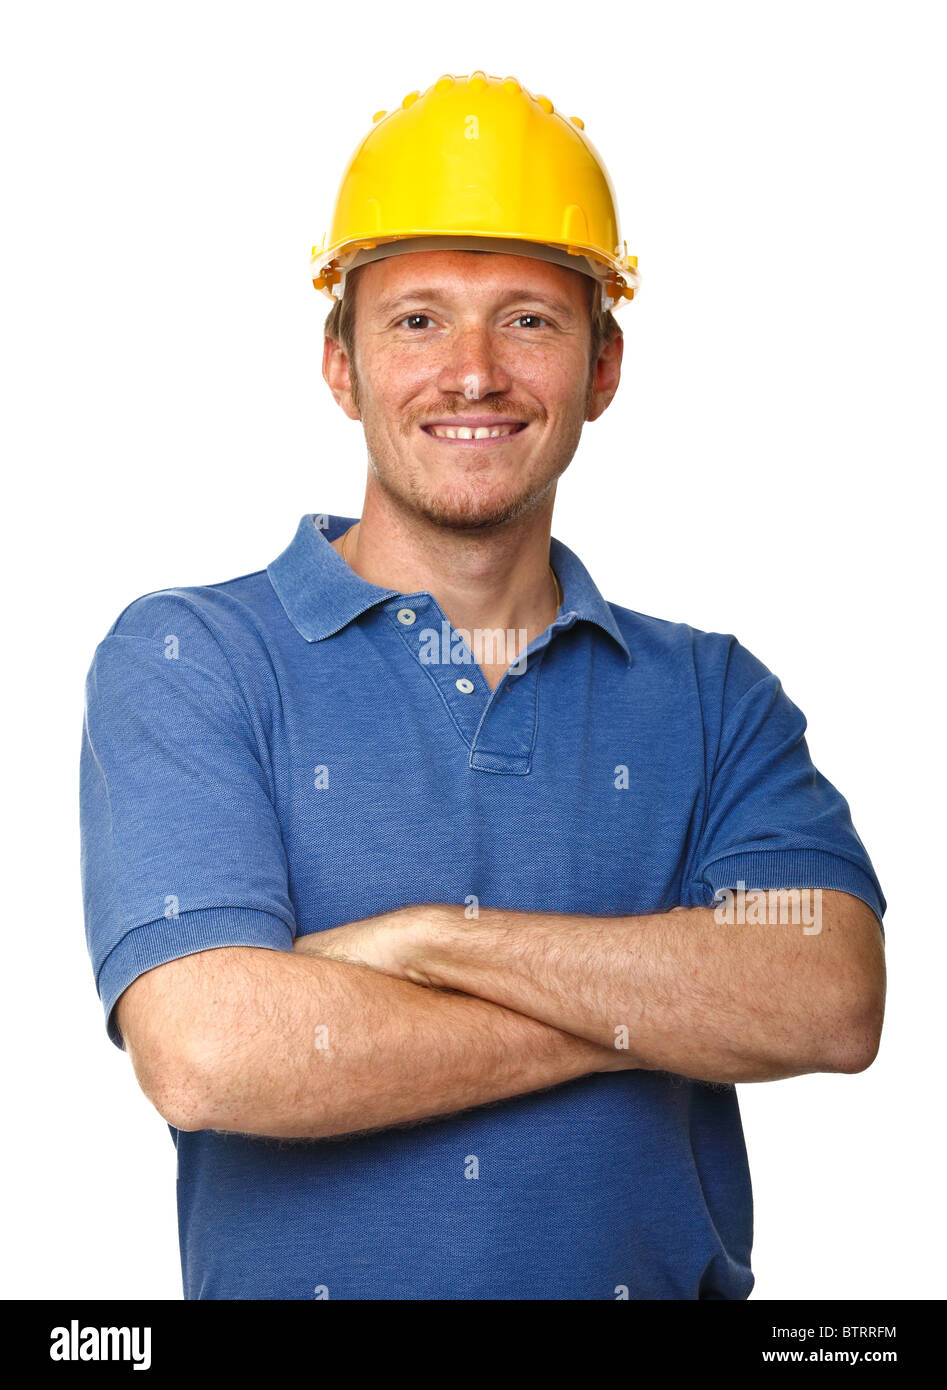 smiling and confident manual worker portrait isolated on white background - Stock Image